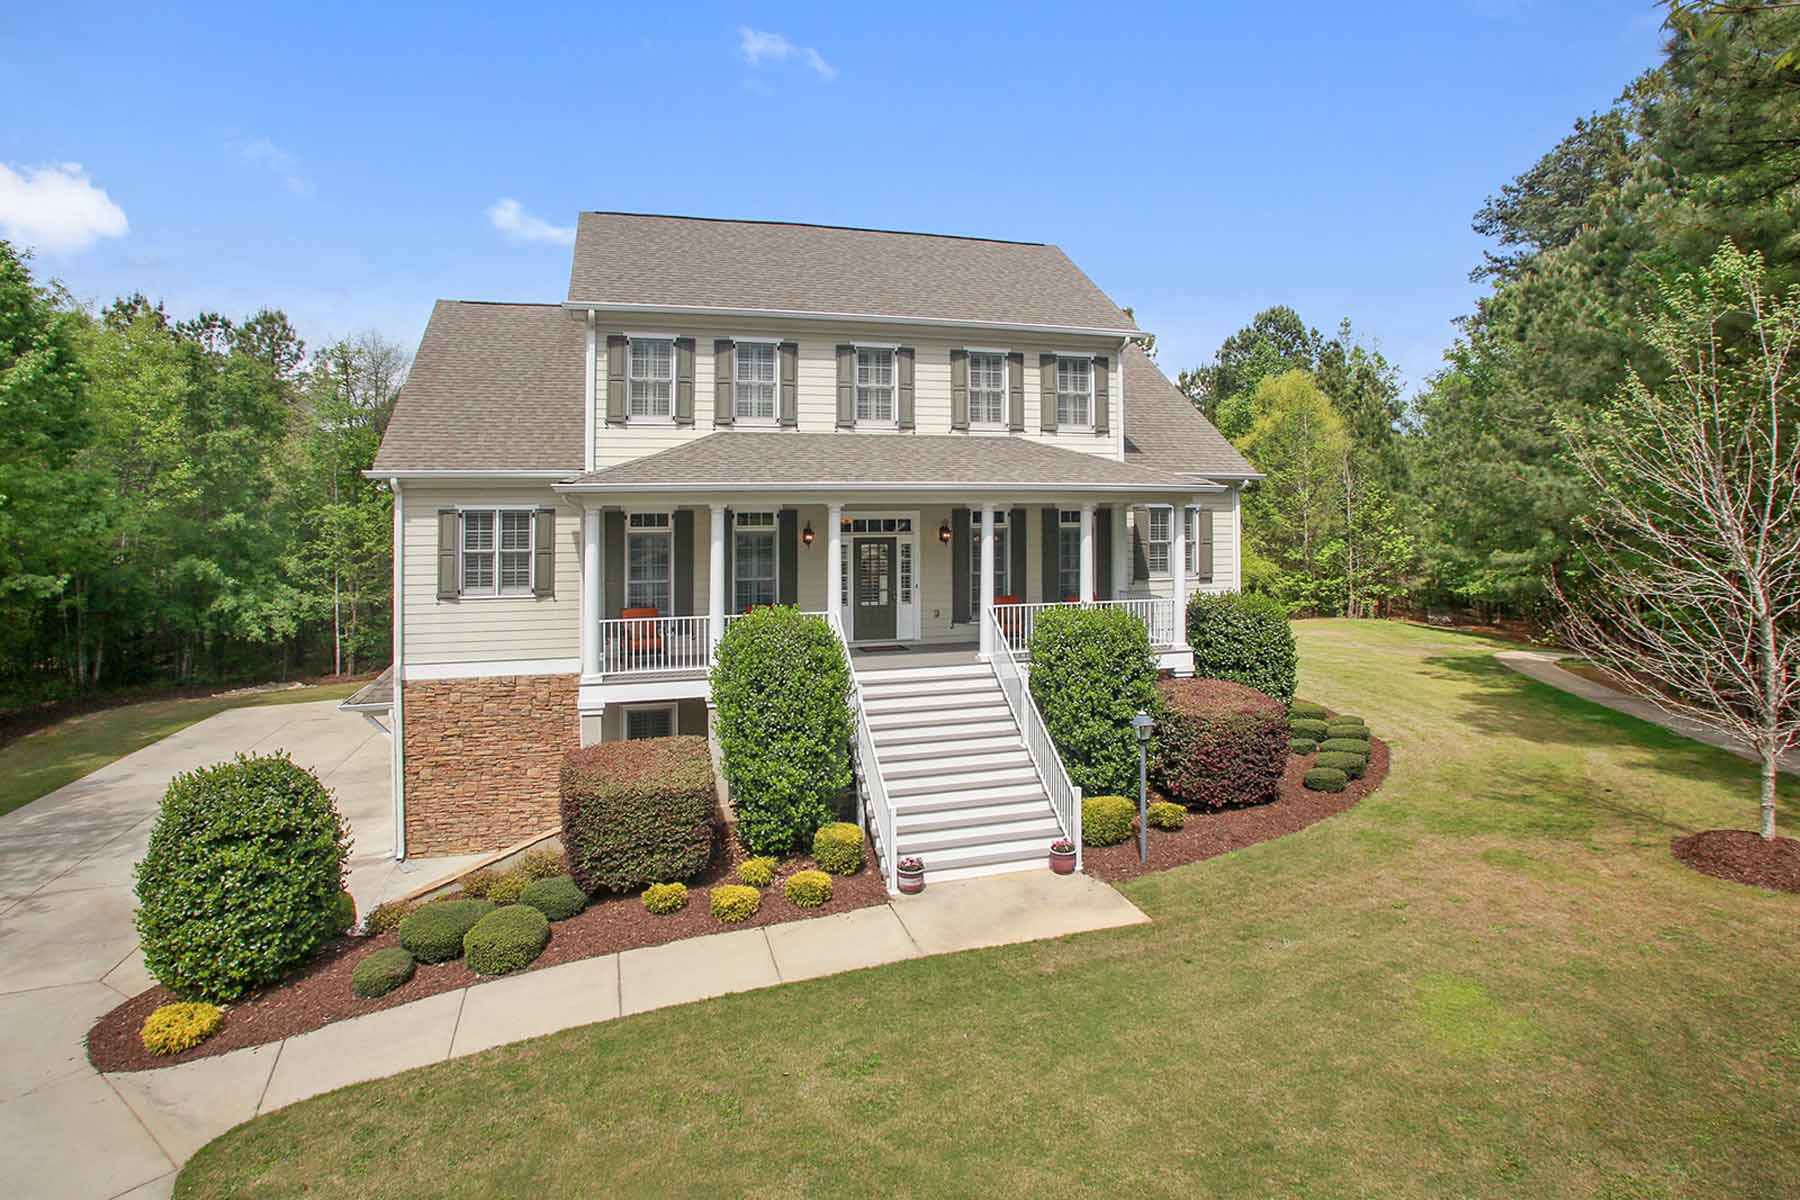 Single Family Home for Active at Spectacular Highgrove Estate 275 Trotters Ridge Fayetteville, Georgia 30215 United States